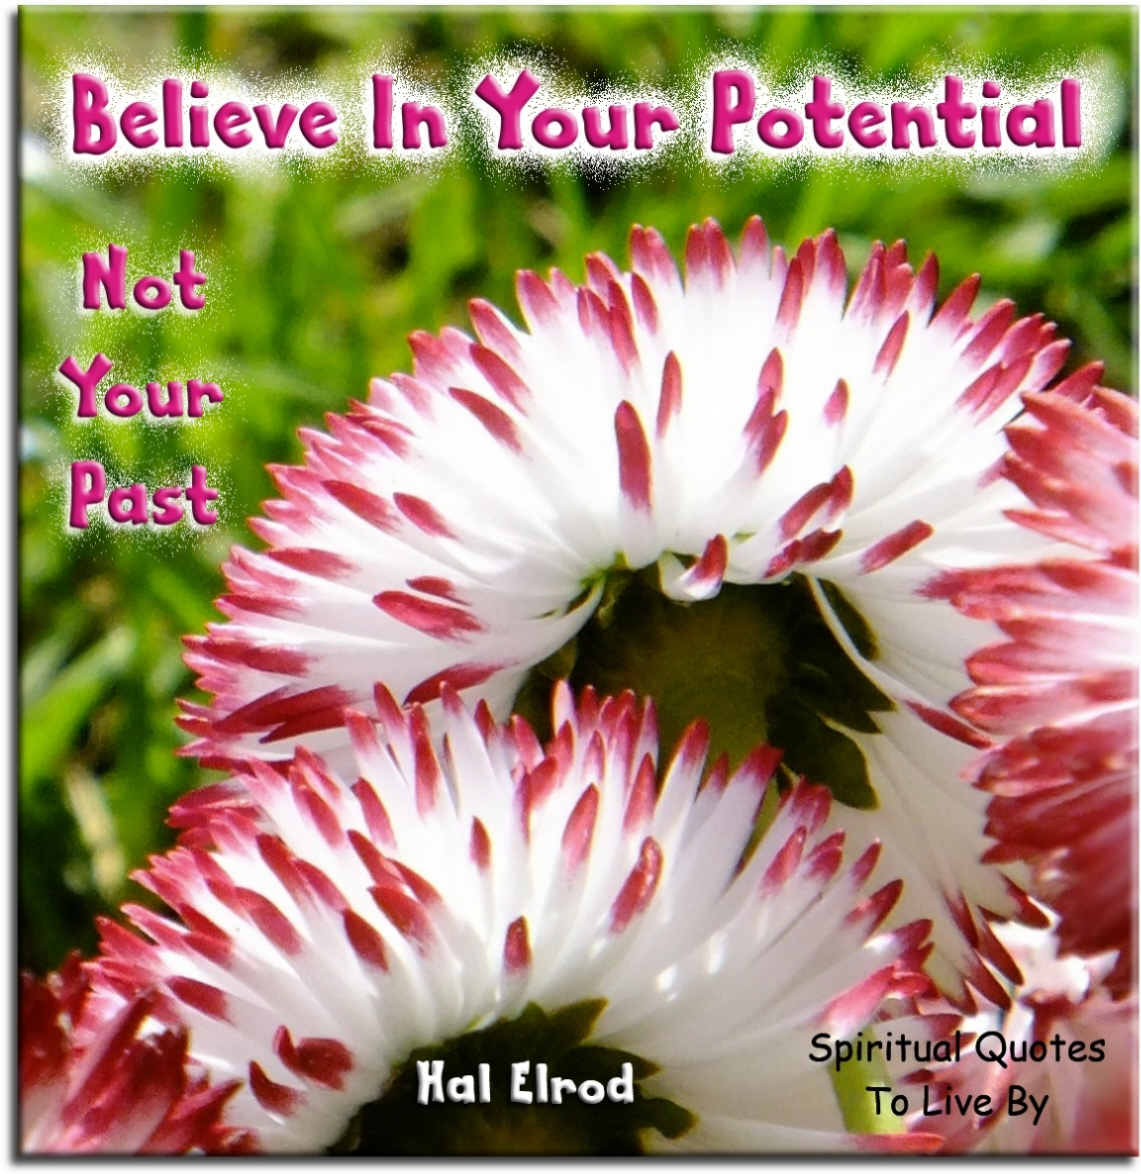 Hal Elrod quote: Believe in your potential... not your past. - Spiritual Quotes To Live By